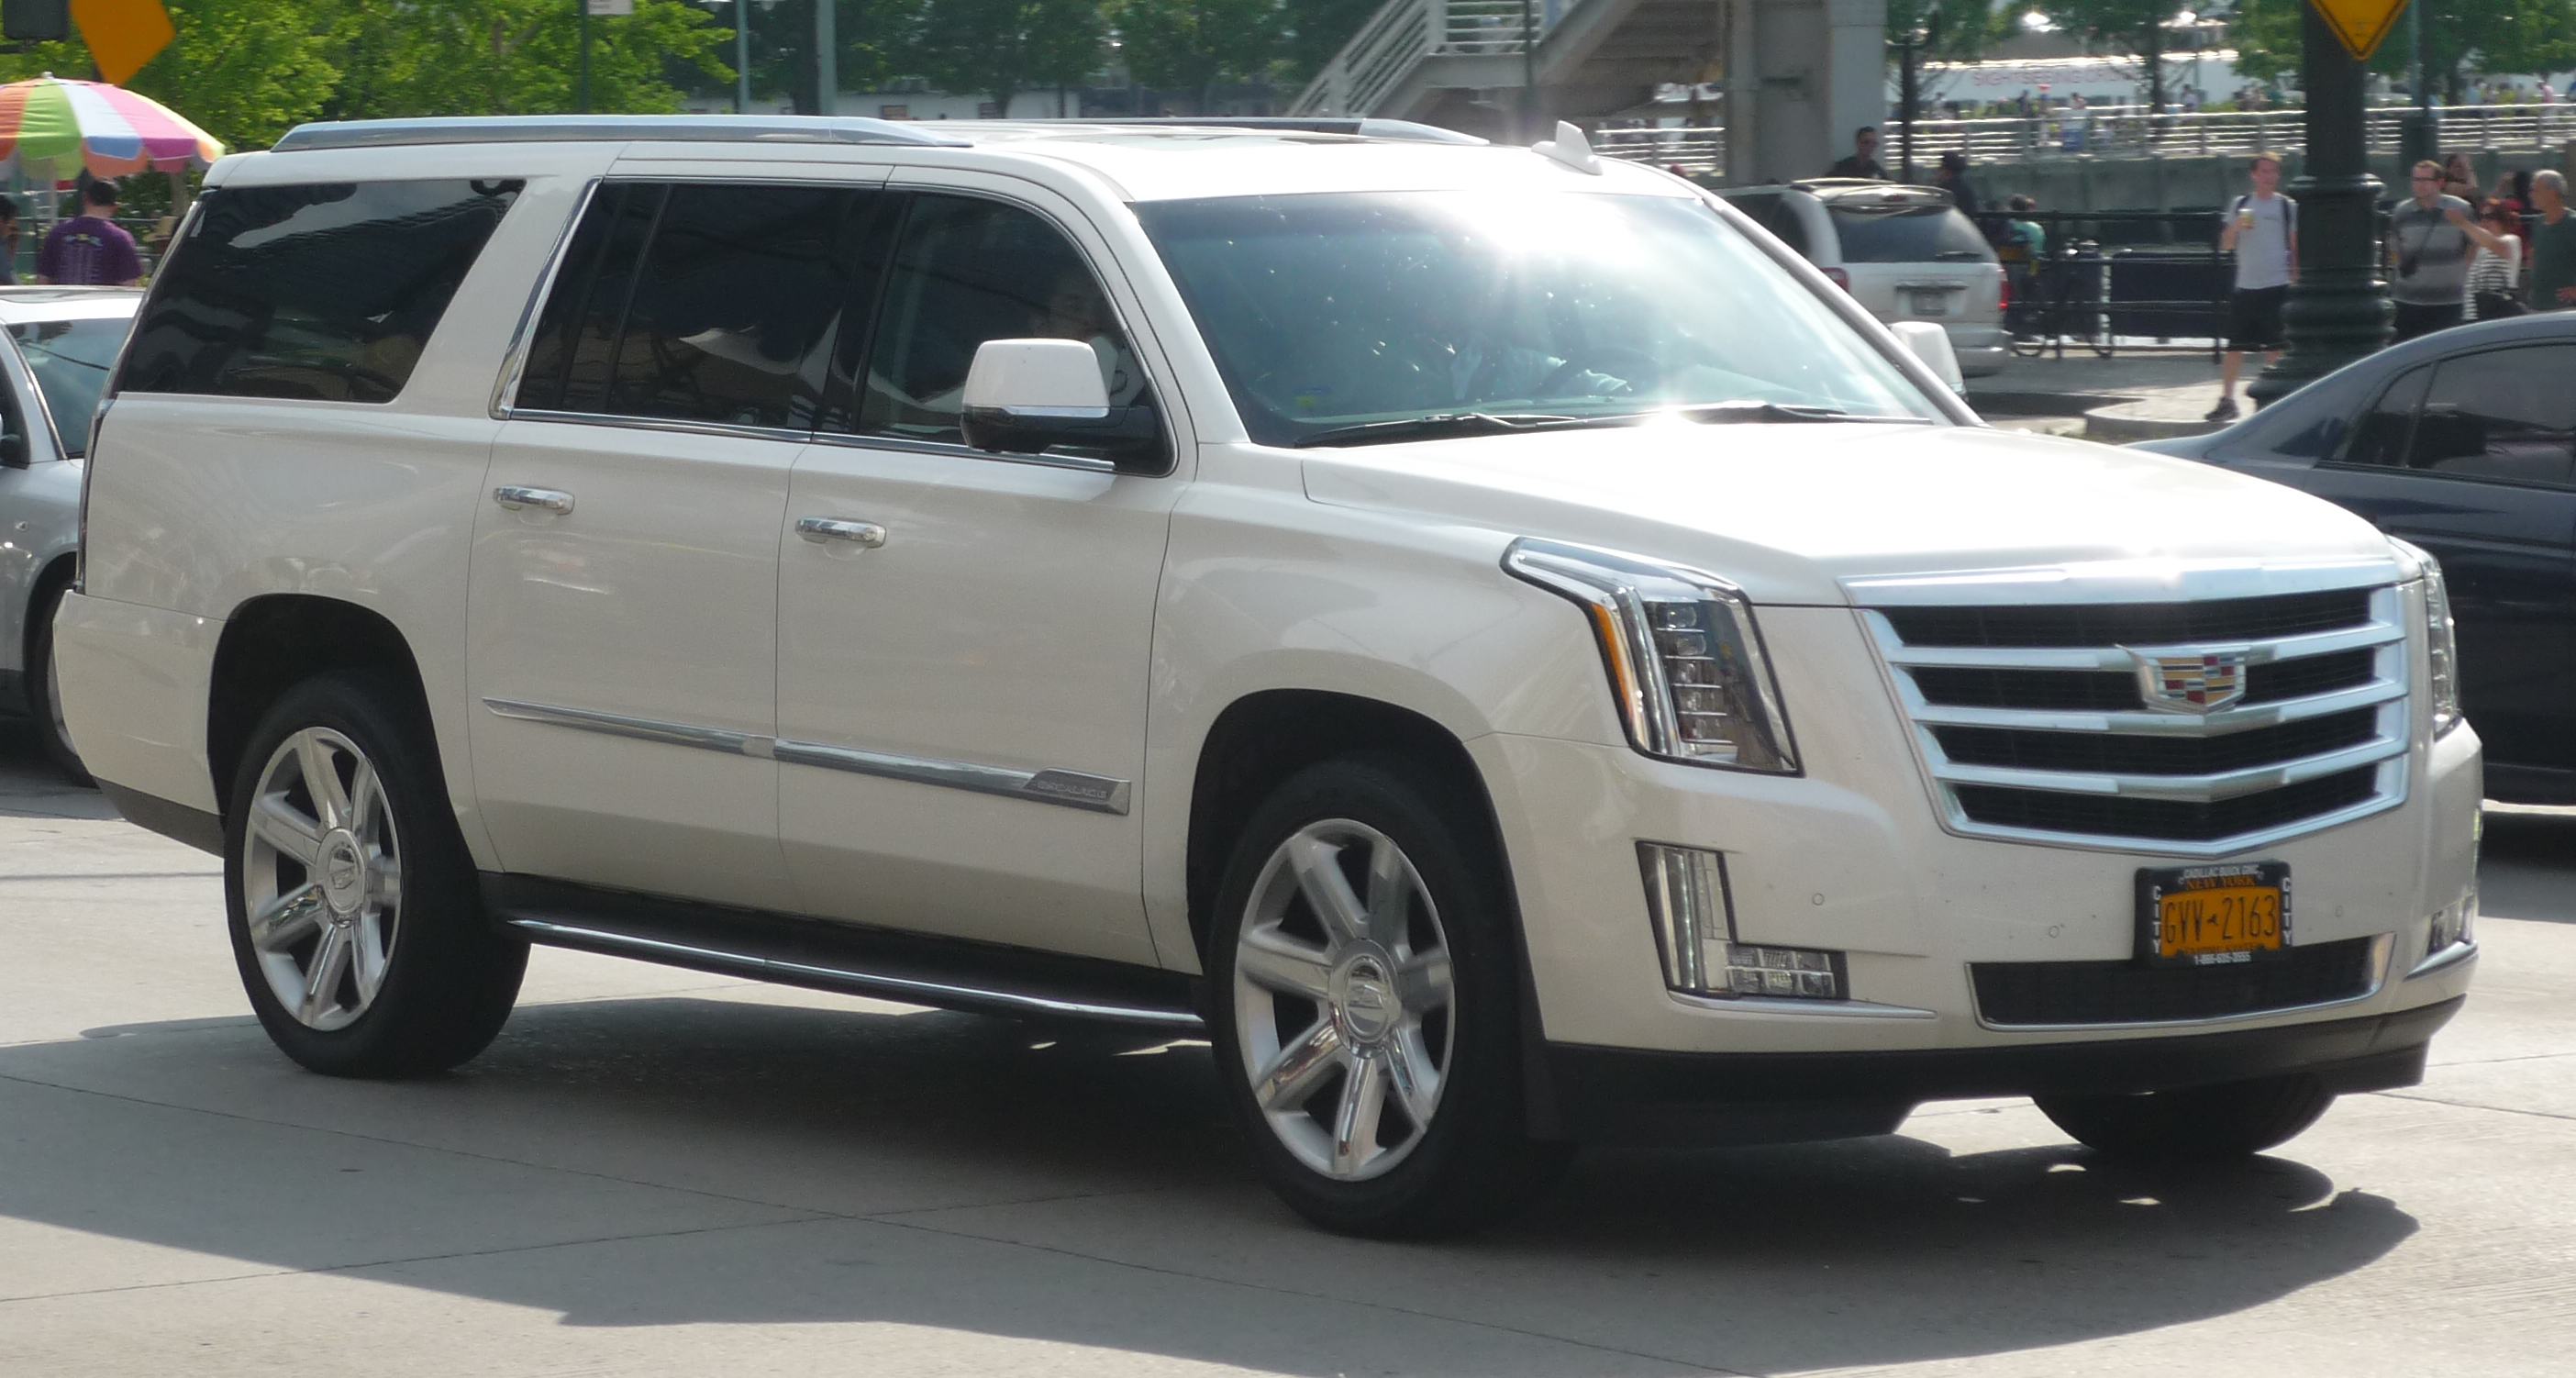 Cadillac Escalade Wikipedia 2010 Srx Engine Diagram 2016 Esv Sporting The New Crest